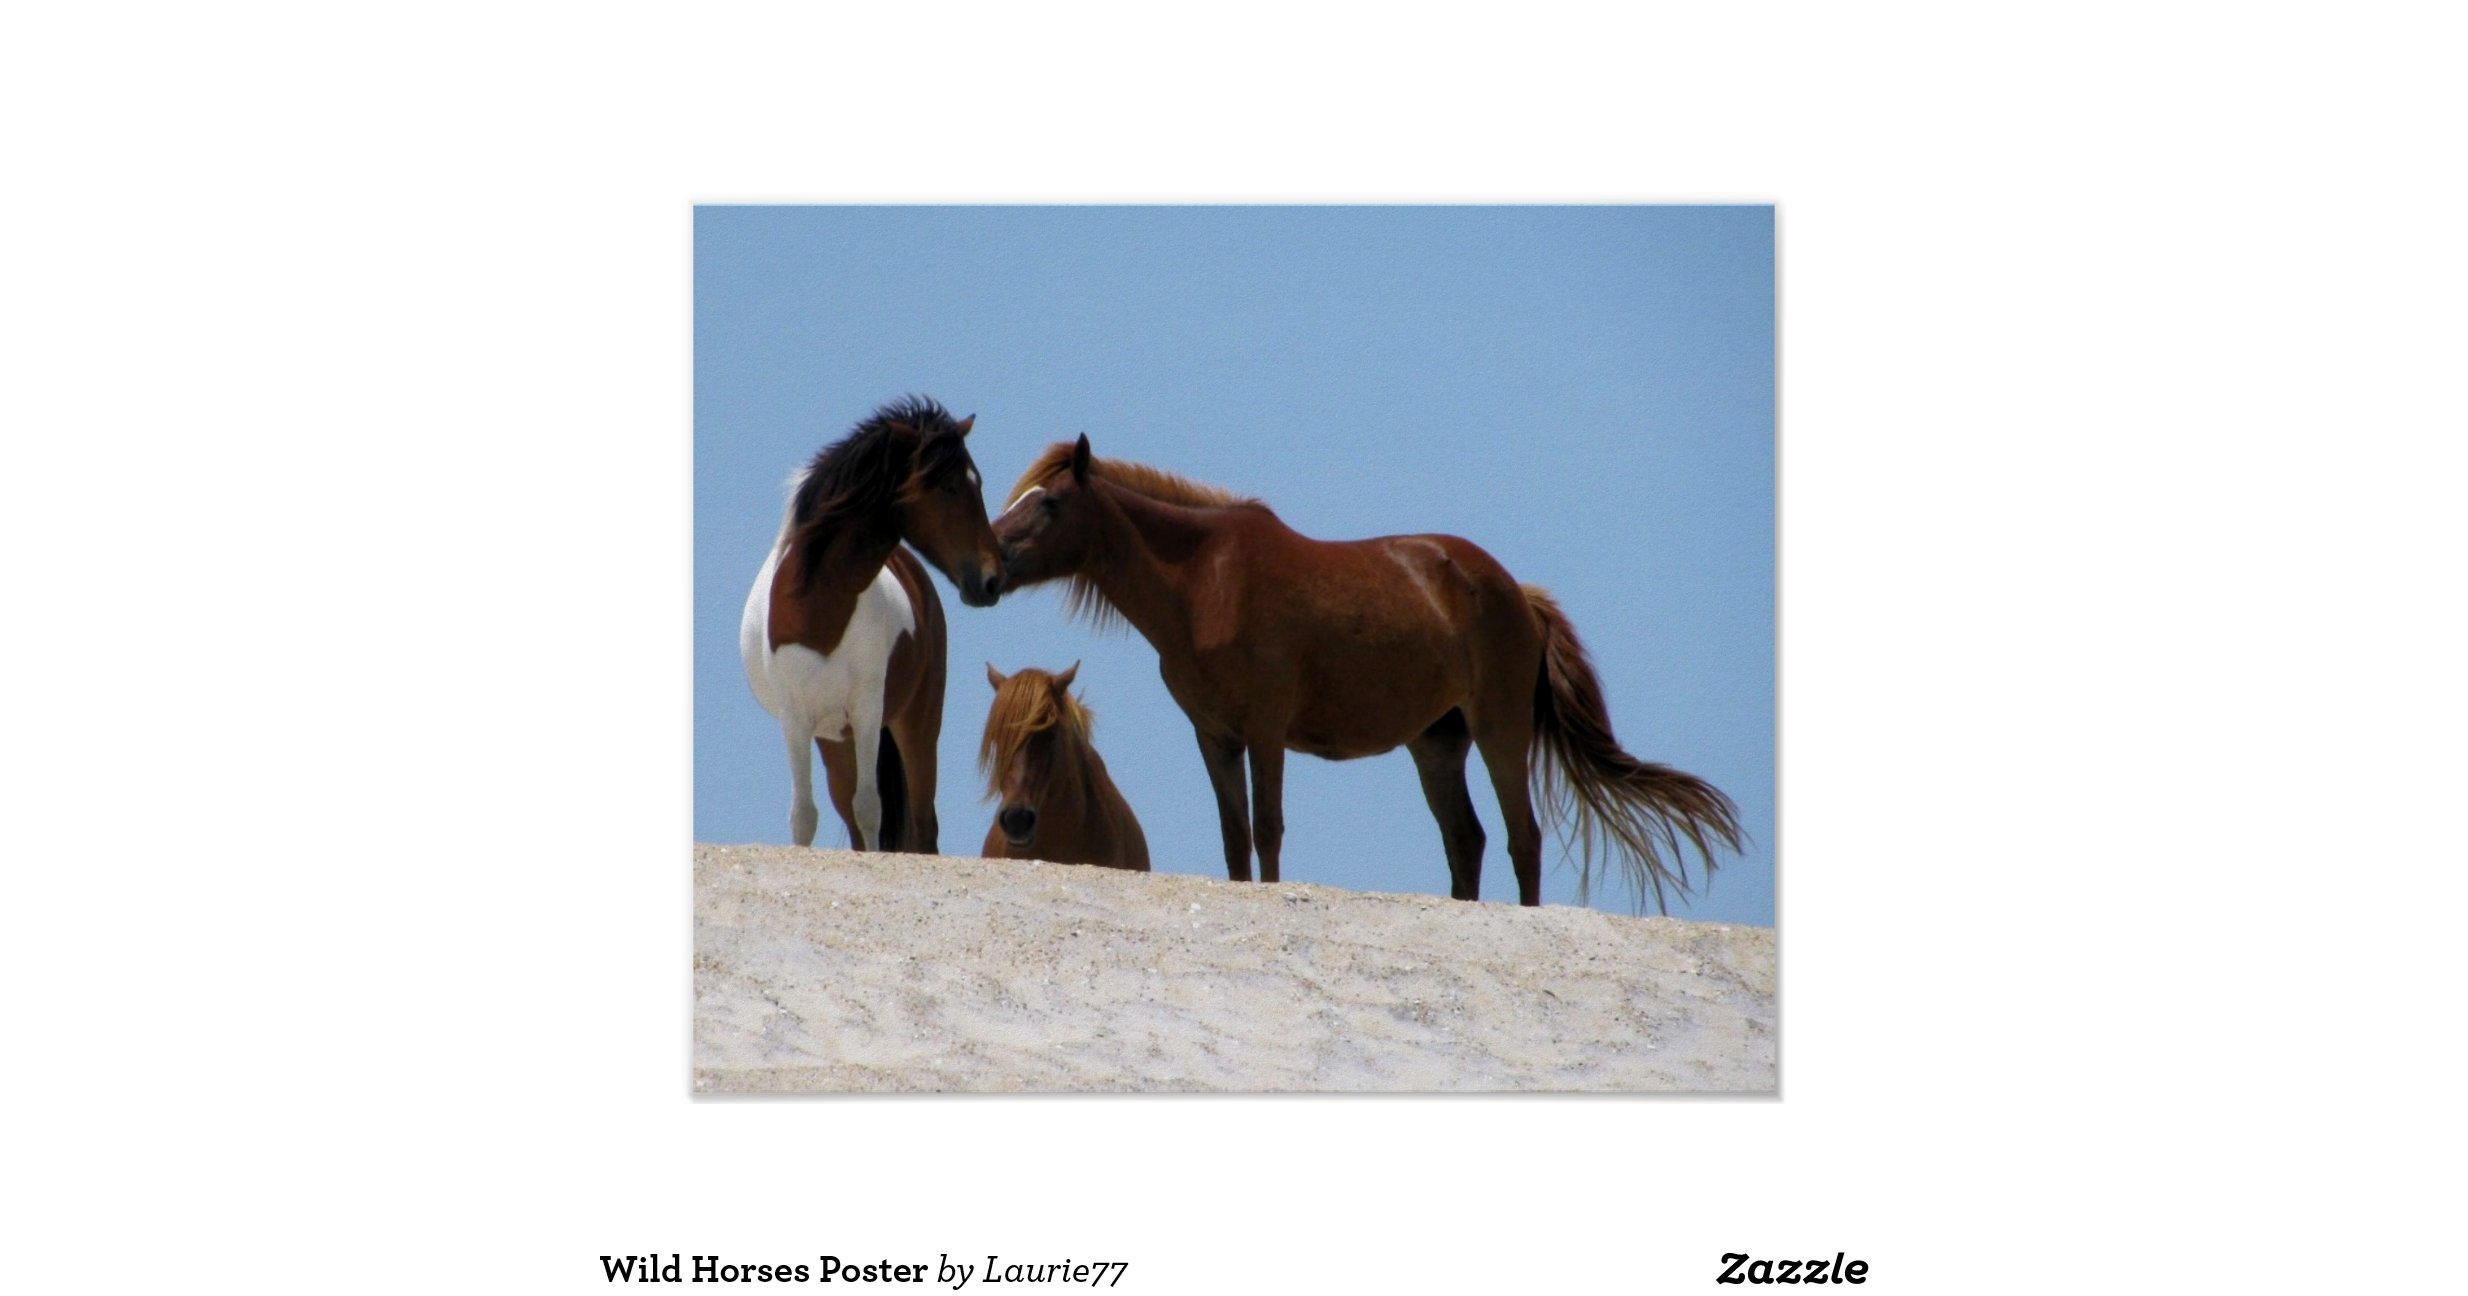 wild horse hispanic single men Meet single muslim men in wild horse is your life ready to meet a single muslim man to commit your attention to or are you only looking for someone to go see a.